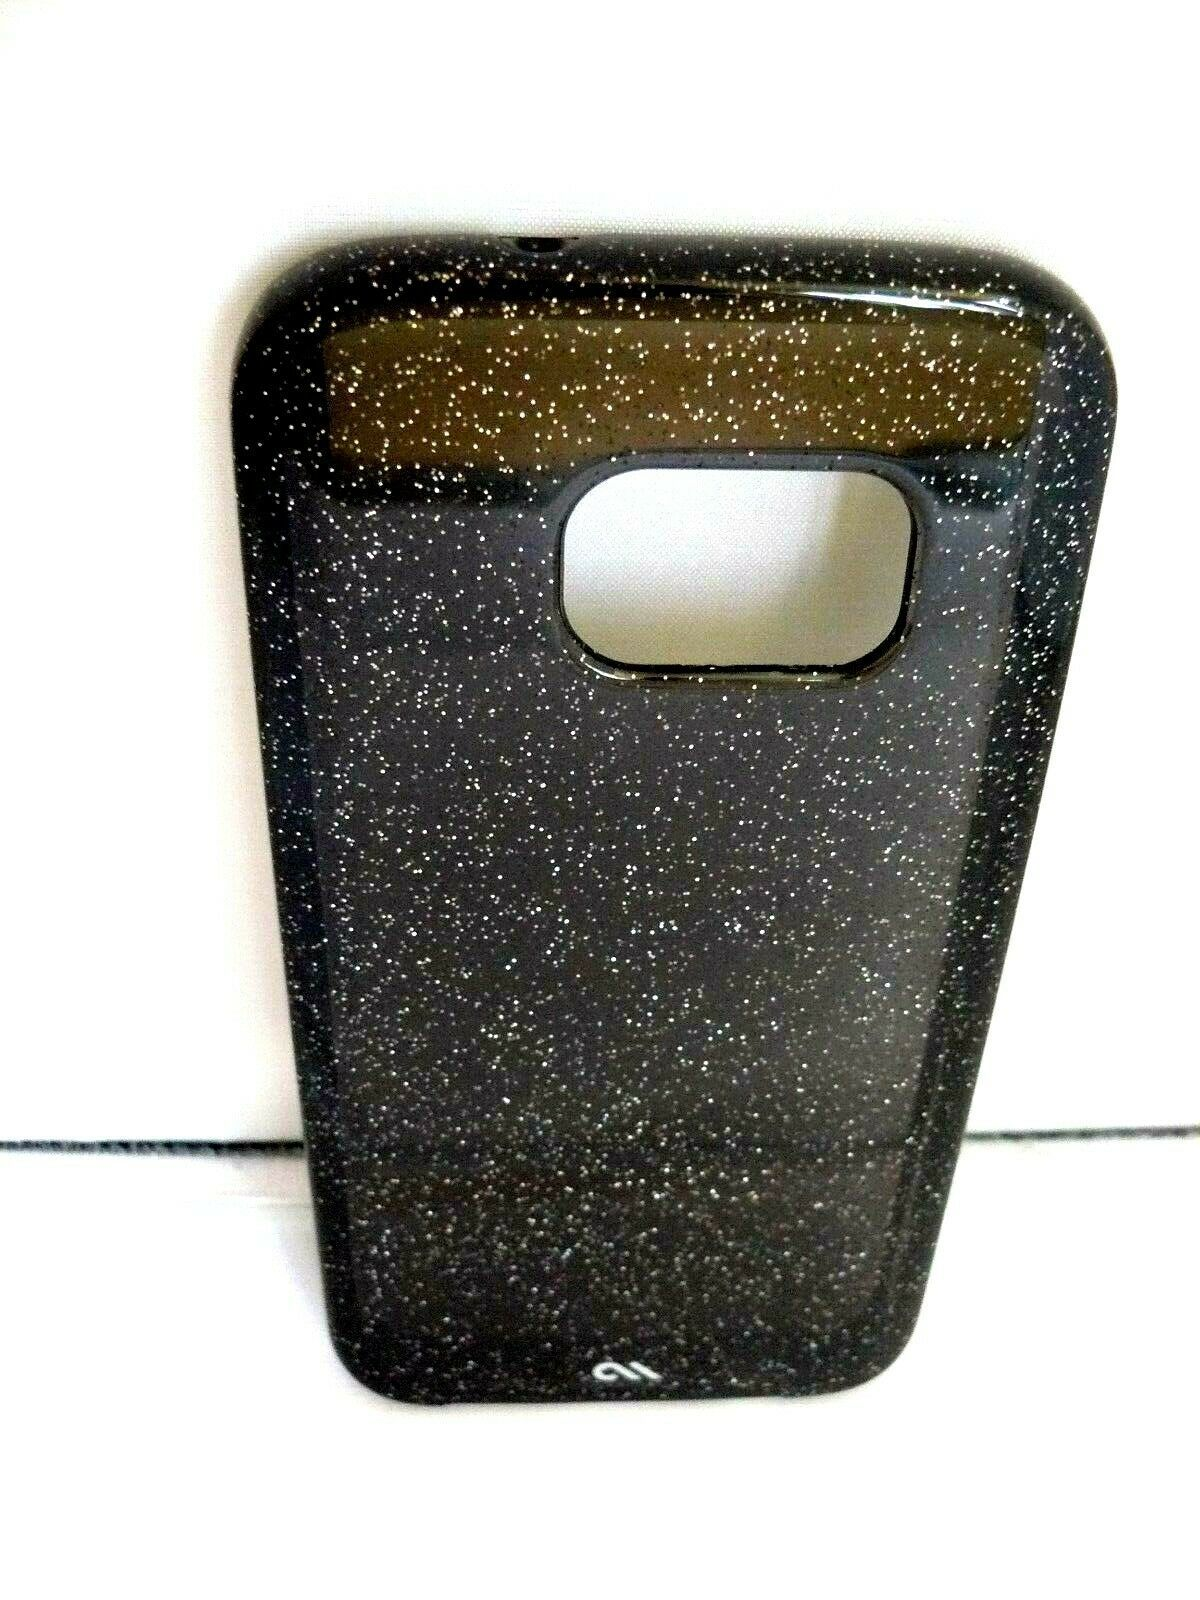 (Lots of) Case Mate Naked Tough Sheer Glam Cases in Black for Samsung Galaxy S7